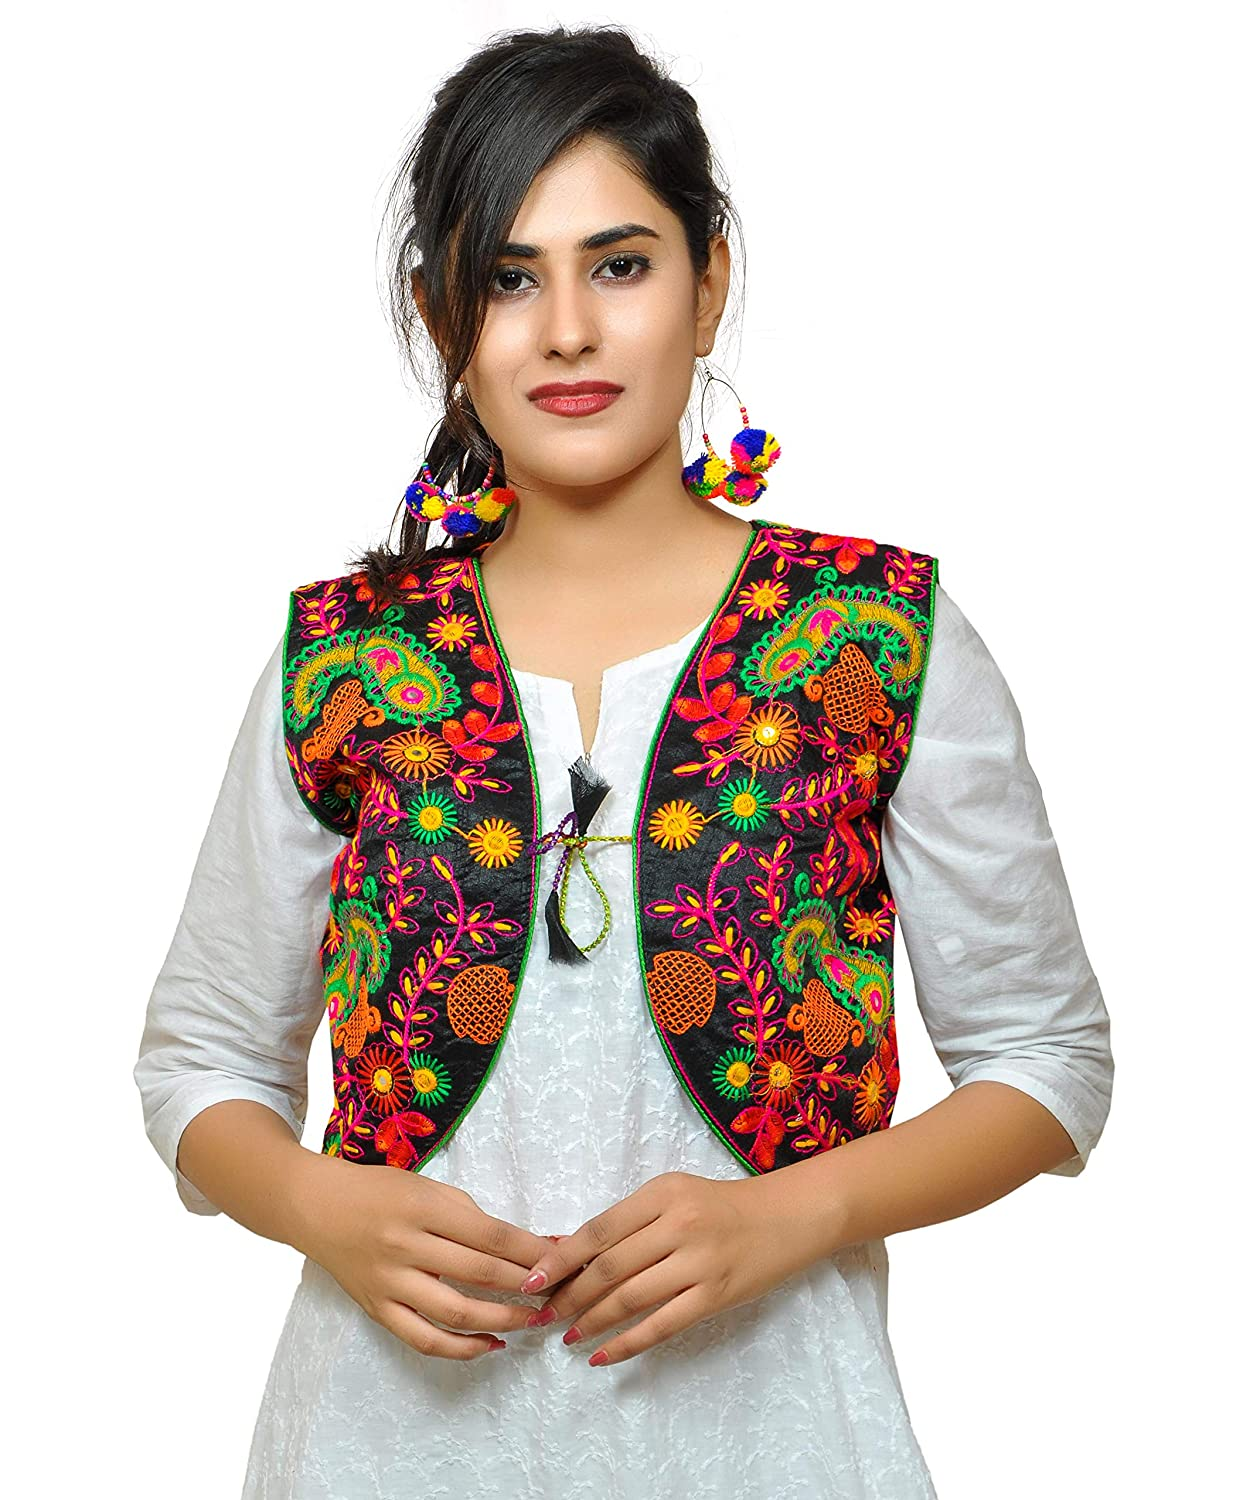 1706a8db0aa Banjara Women's India Poly Cotton Embroidered Ethnic Kutch Work Shrug  (Black